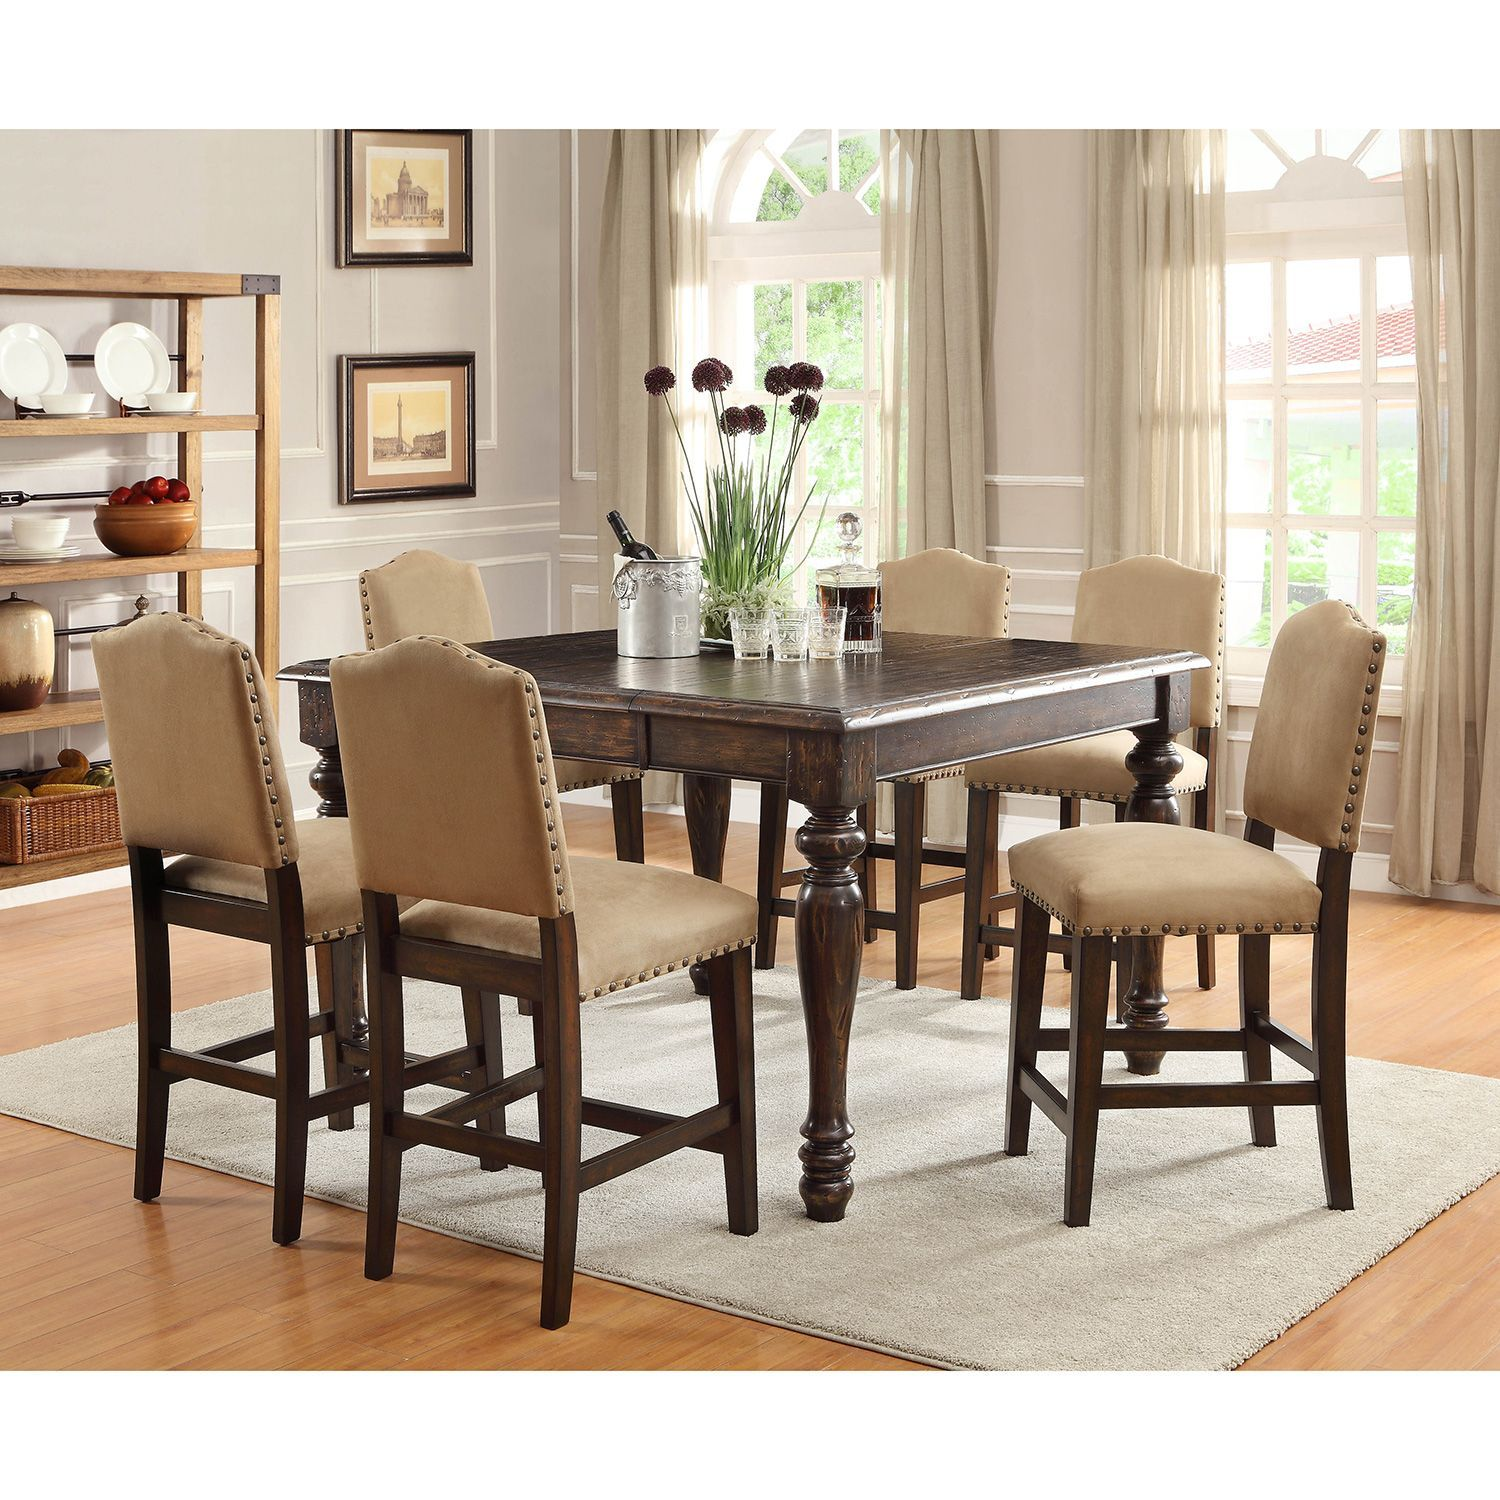 Garrett Counter Height Dining Set 7 Pc Sam S Club Counter